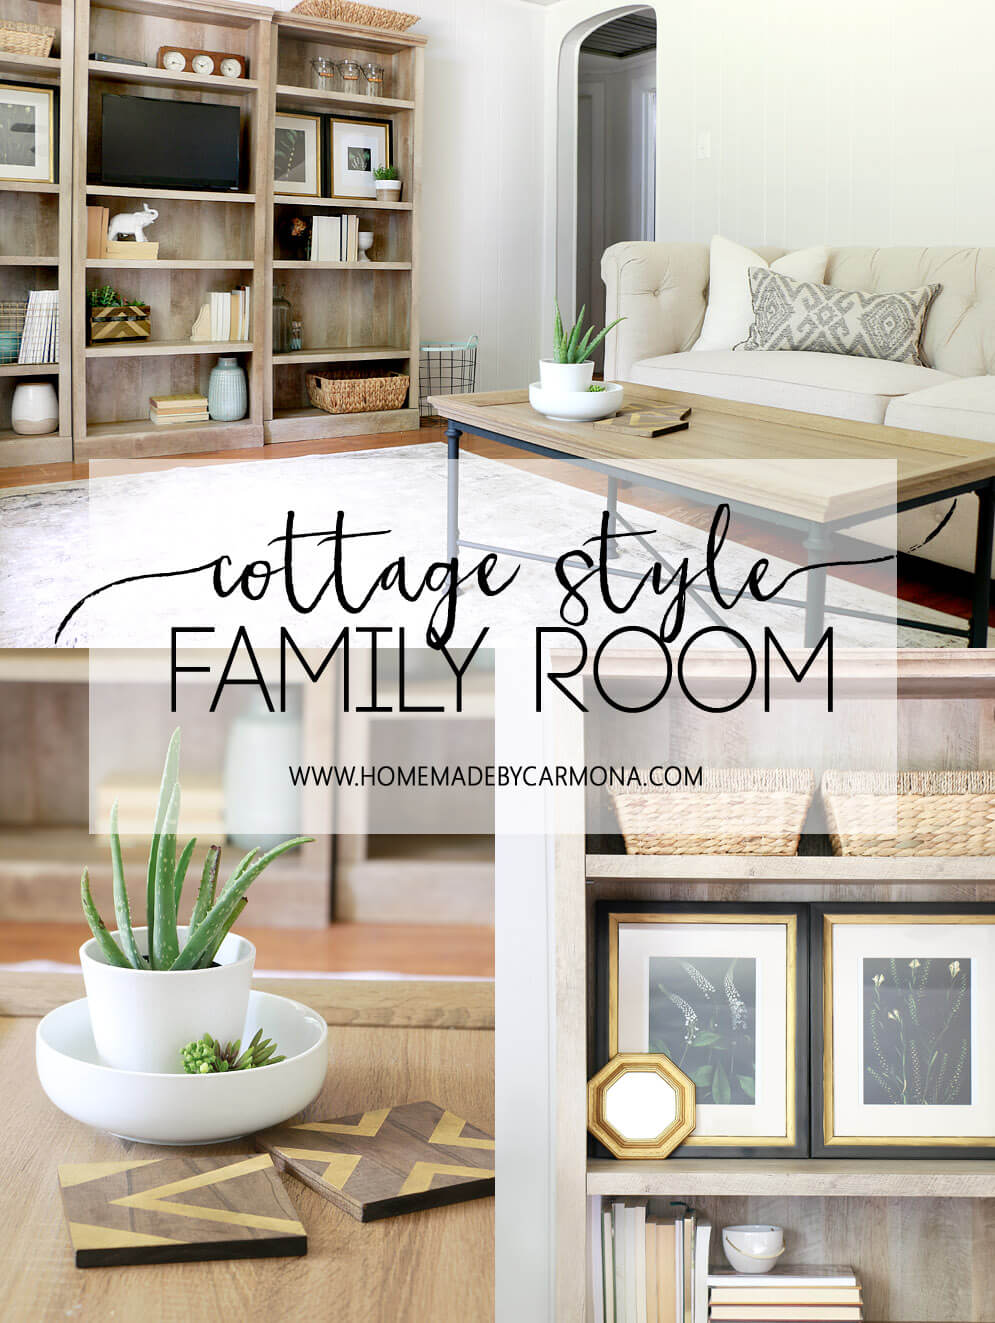 Cozy Cottage Family Room Home Made By Carmona